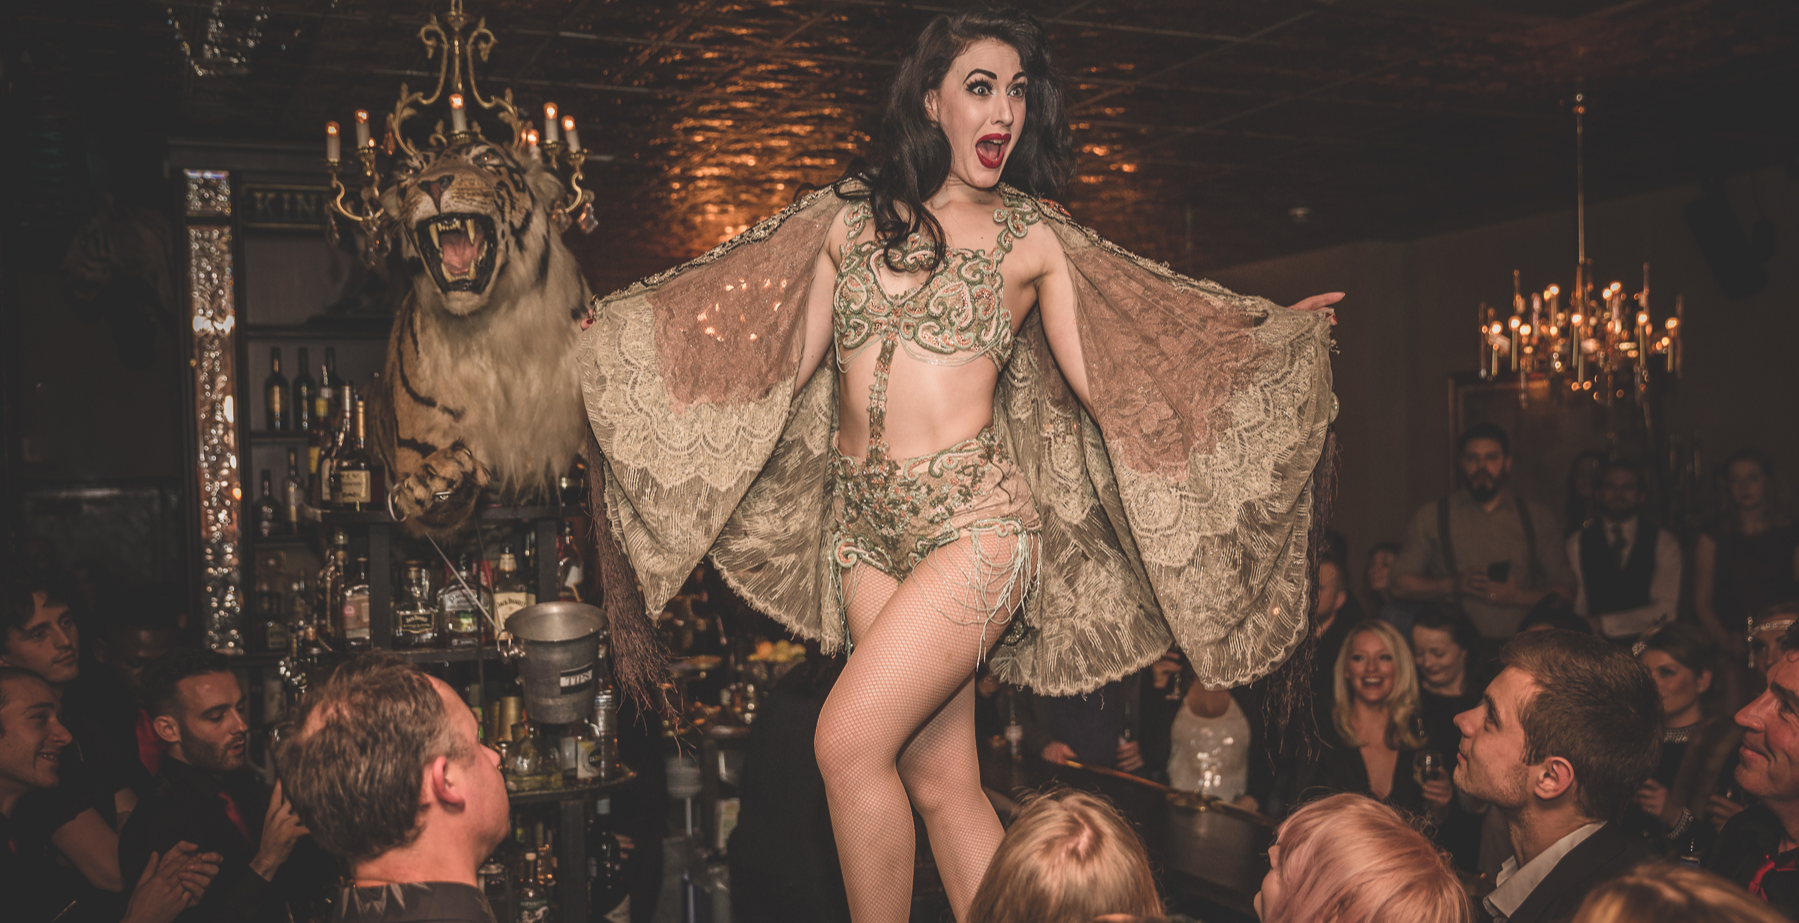 GIN HOUSE BURLESQUE - NEW YEAR'S EVE HOUSE PARTY